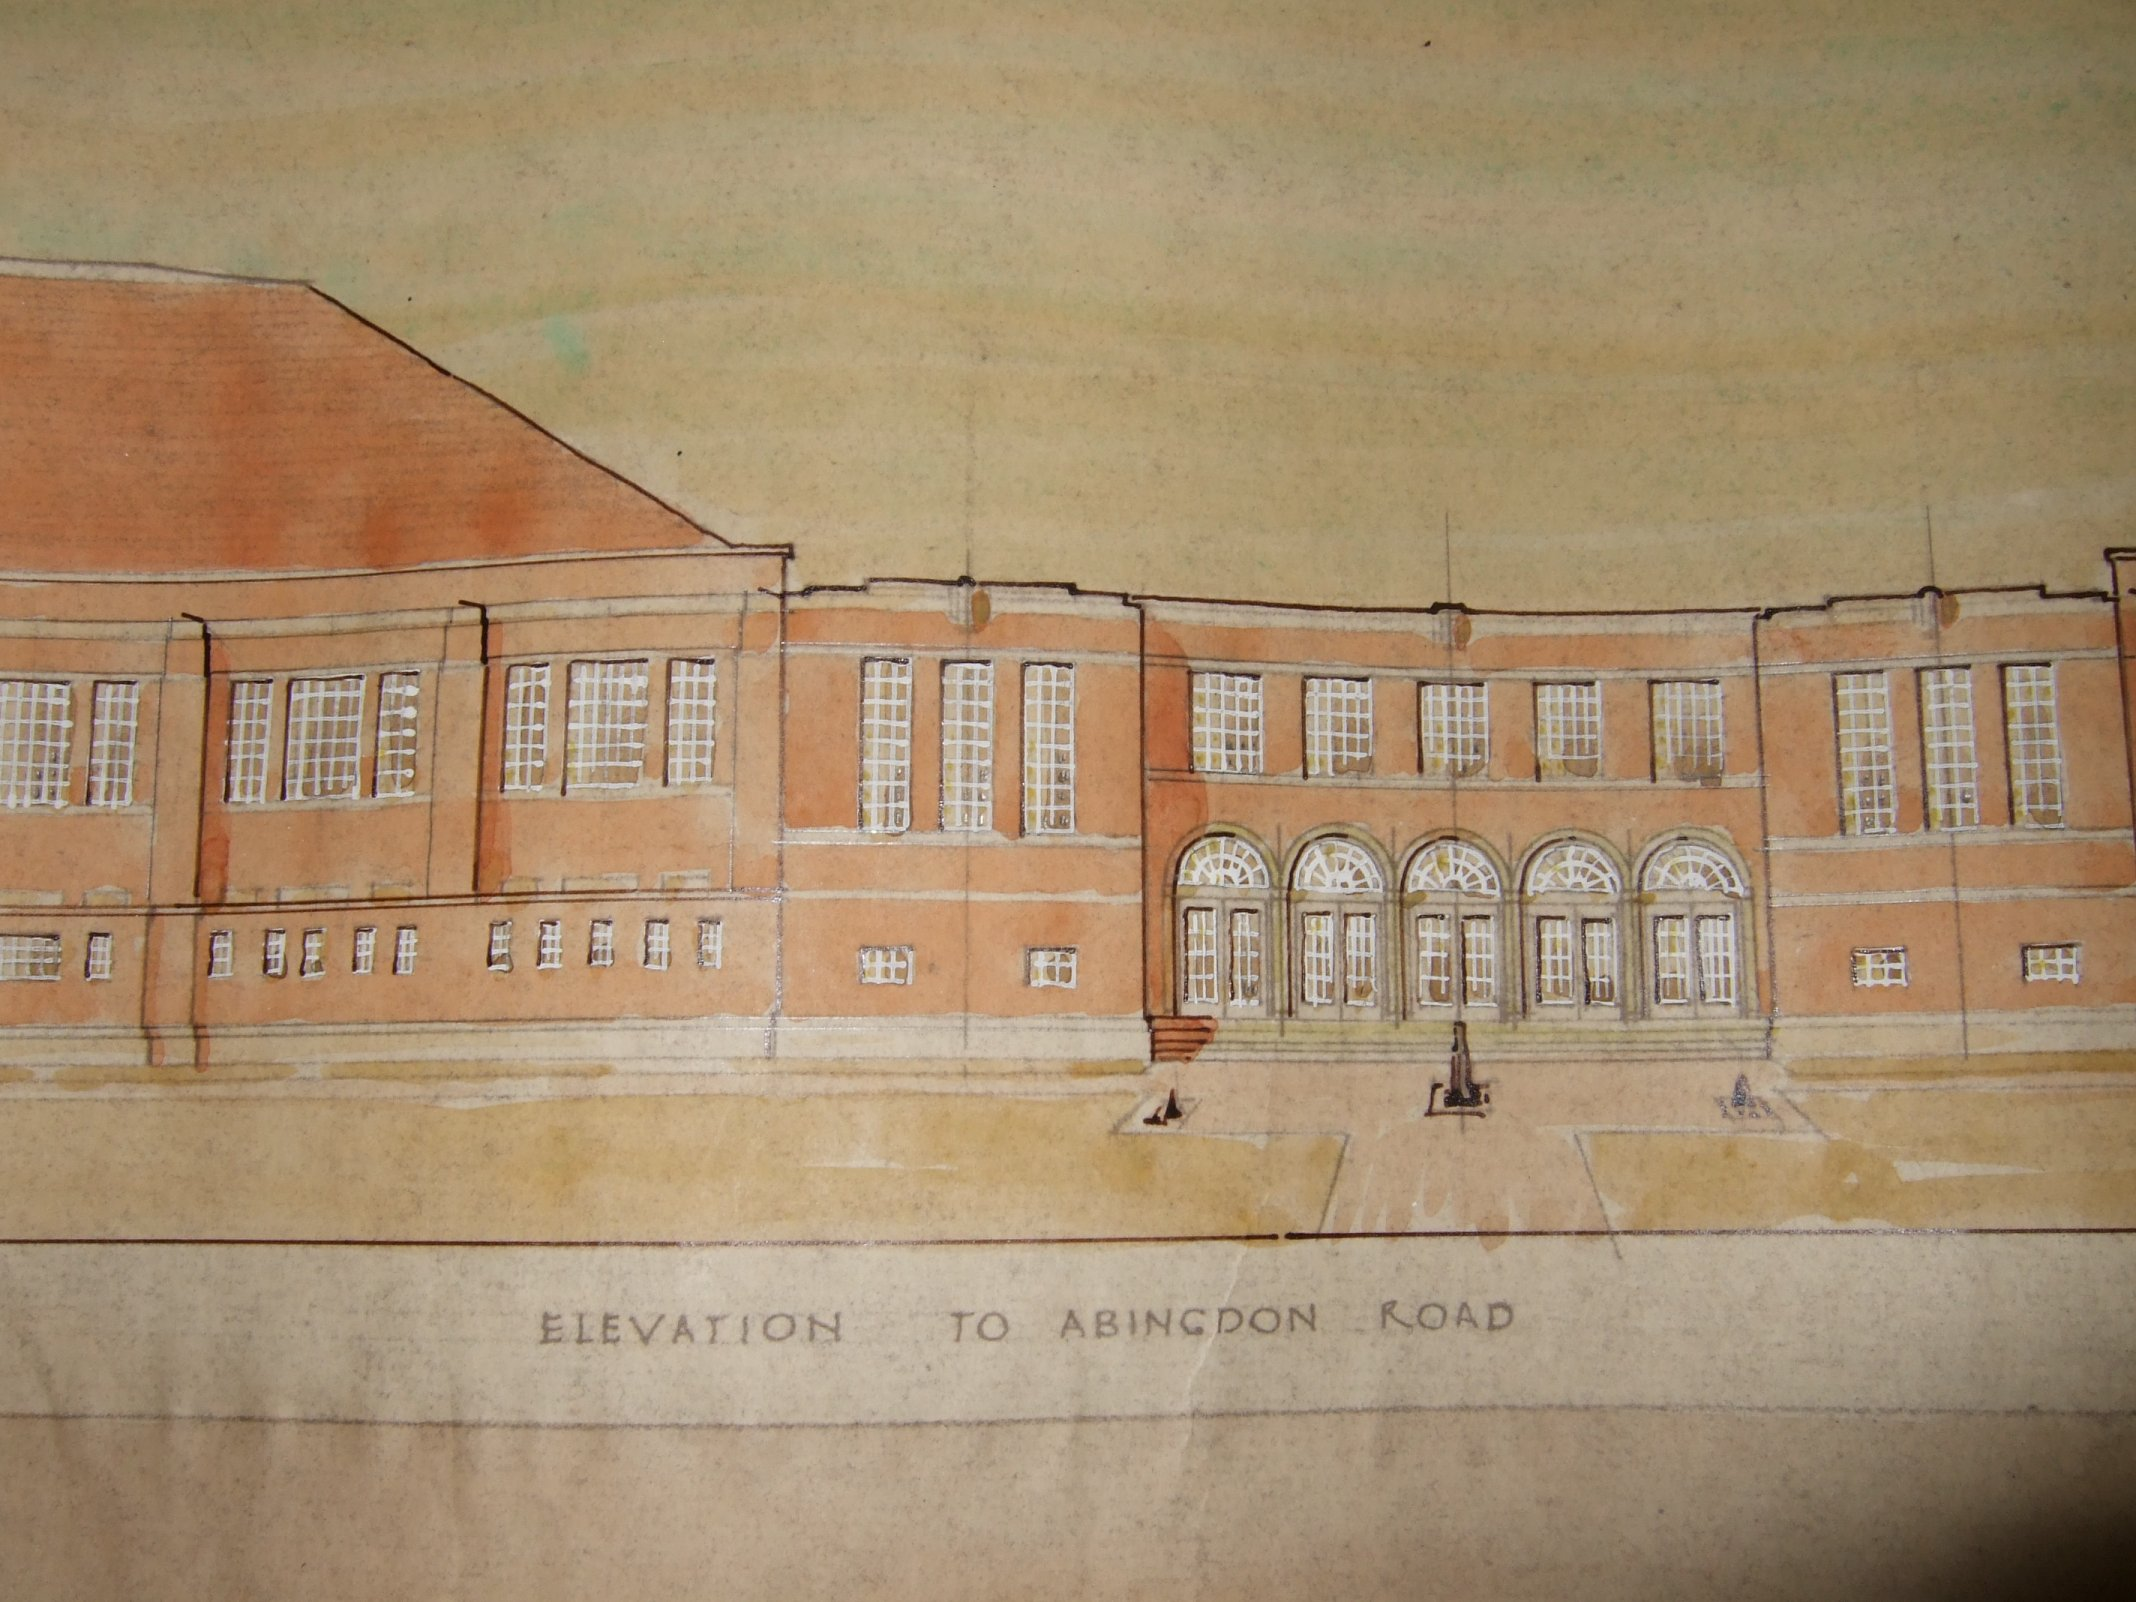 [Proposed Gala Baths, Hinksey Park, elevation]